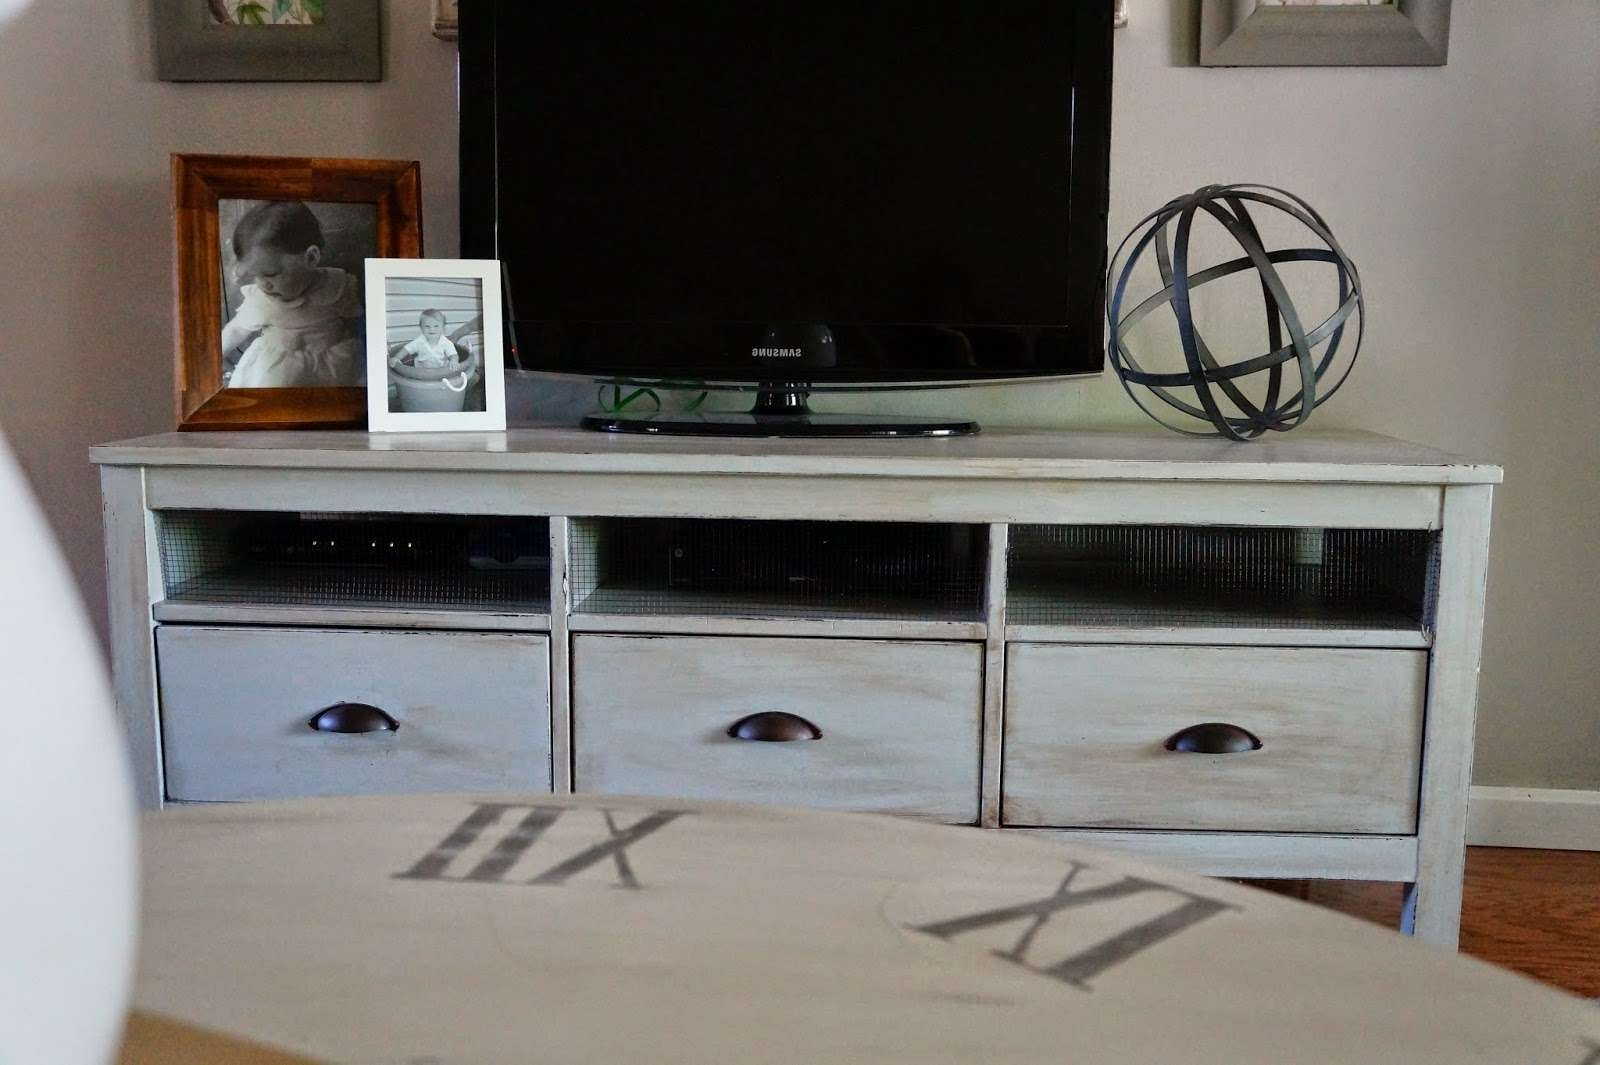 Shabby Chic Ikea Tv Stand With Mount And Drawers – Decofurnish Throughout Shabby Chic Tv Cabinets (View 15 of 20)